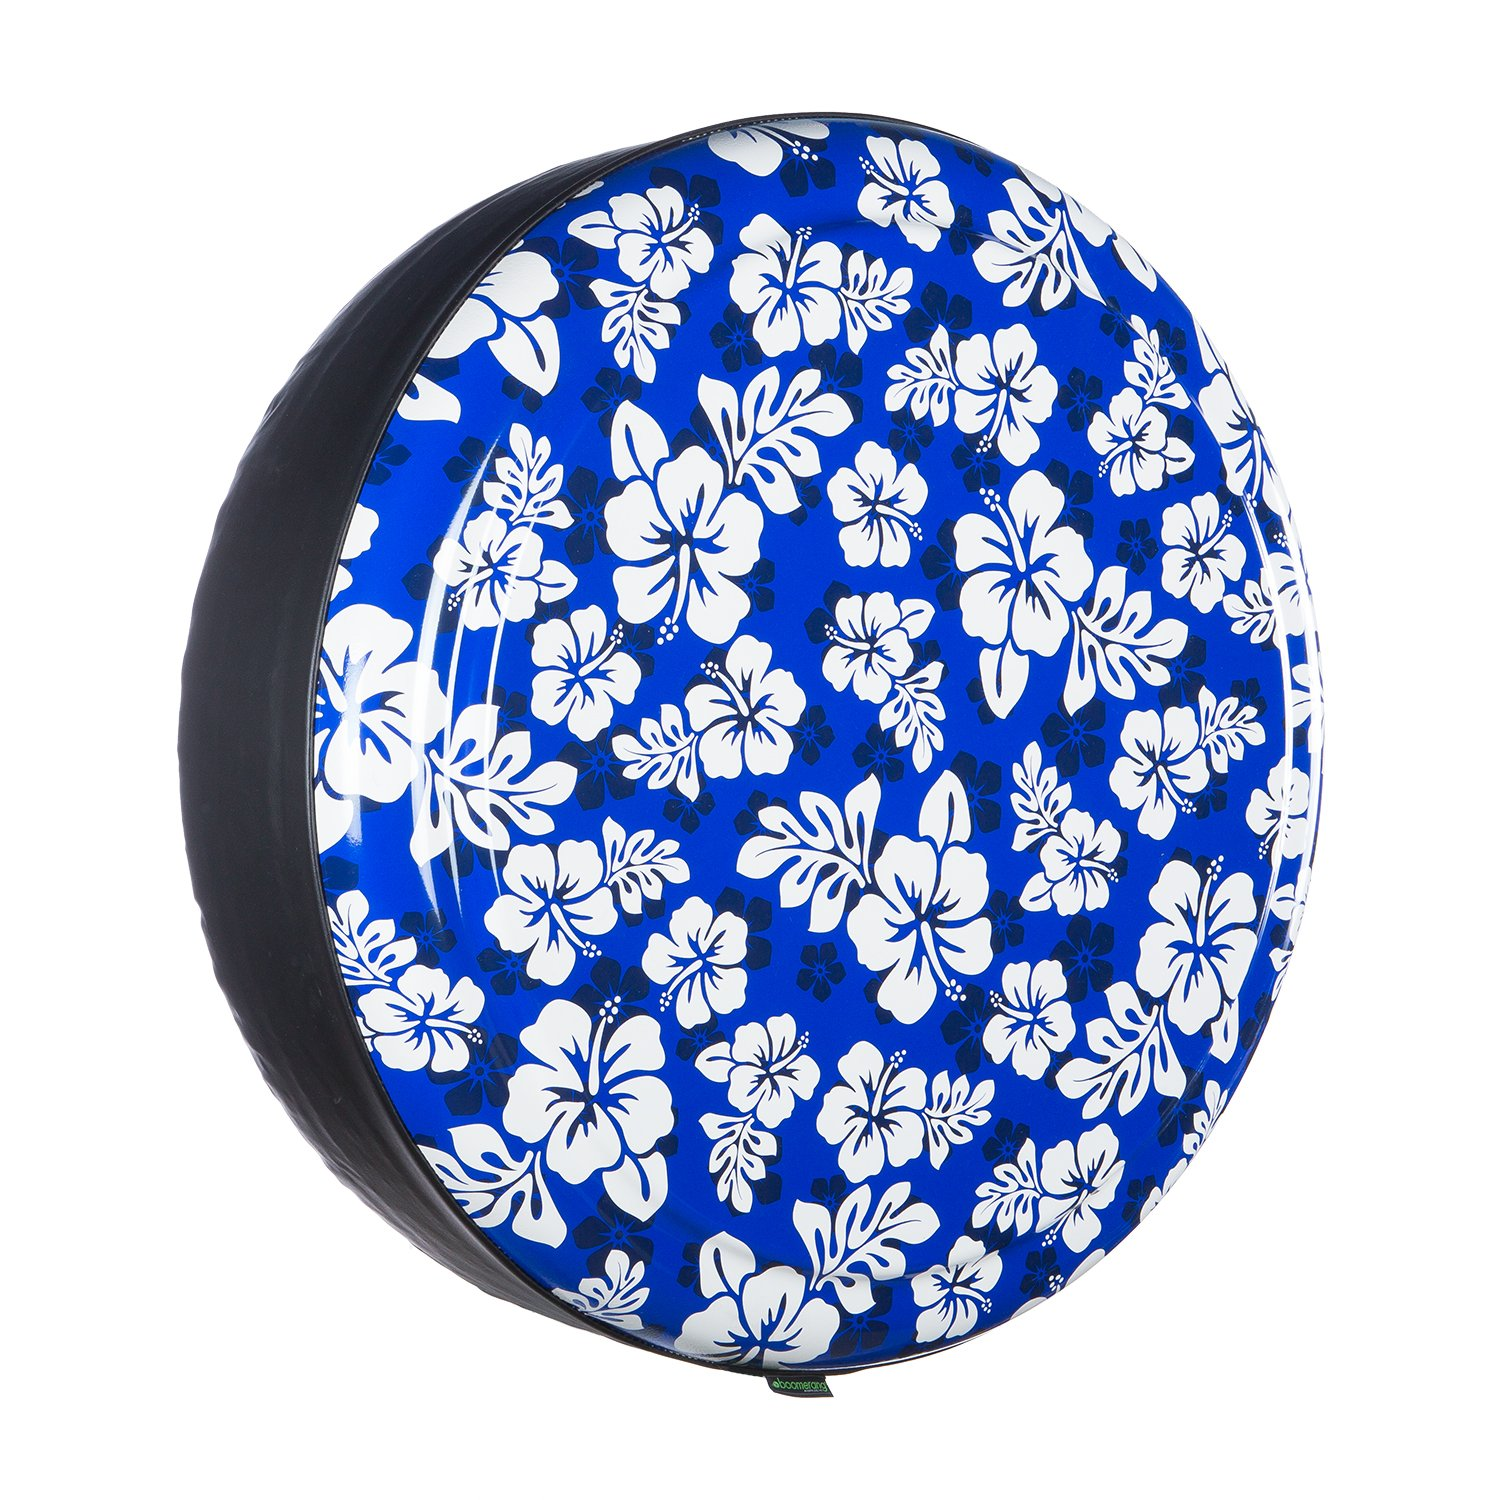 35'' Rigid Tire Cover (Plastic Face & Vinyl Band) - Hawaiian Print - Blue